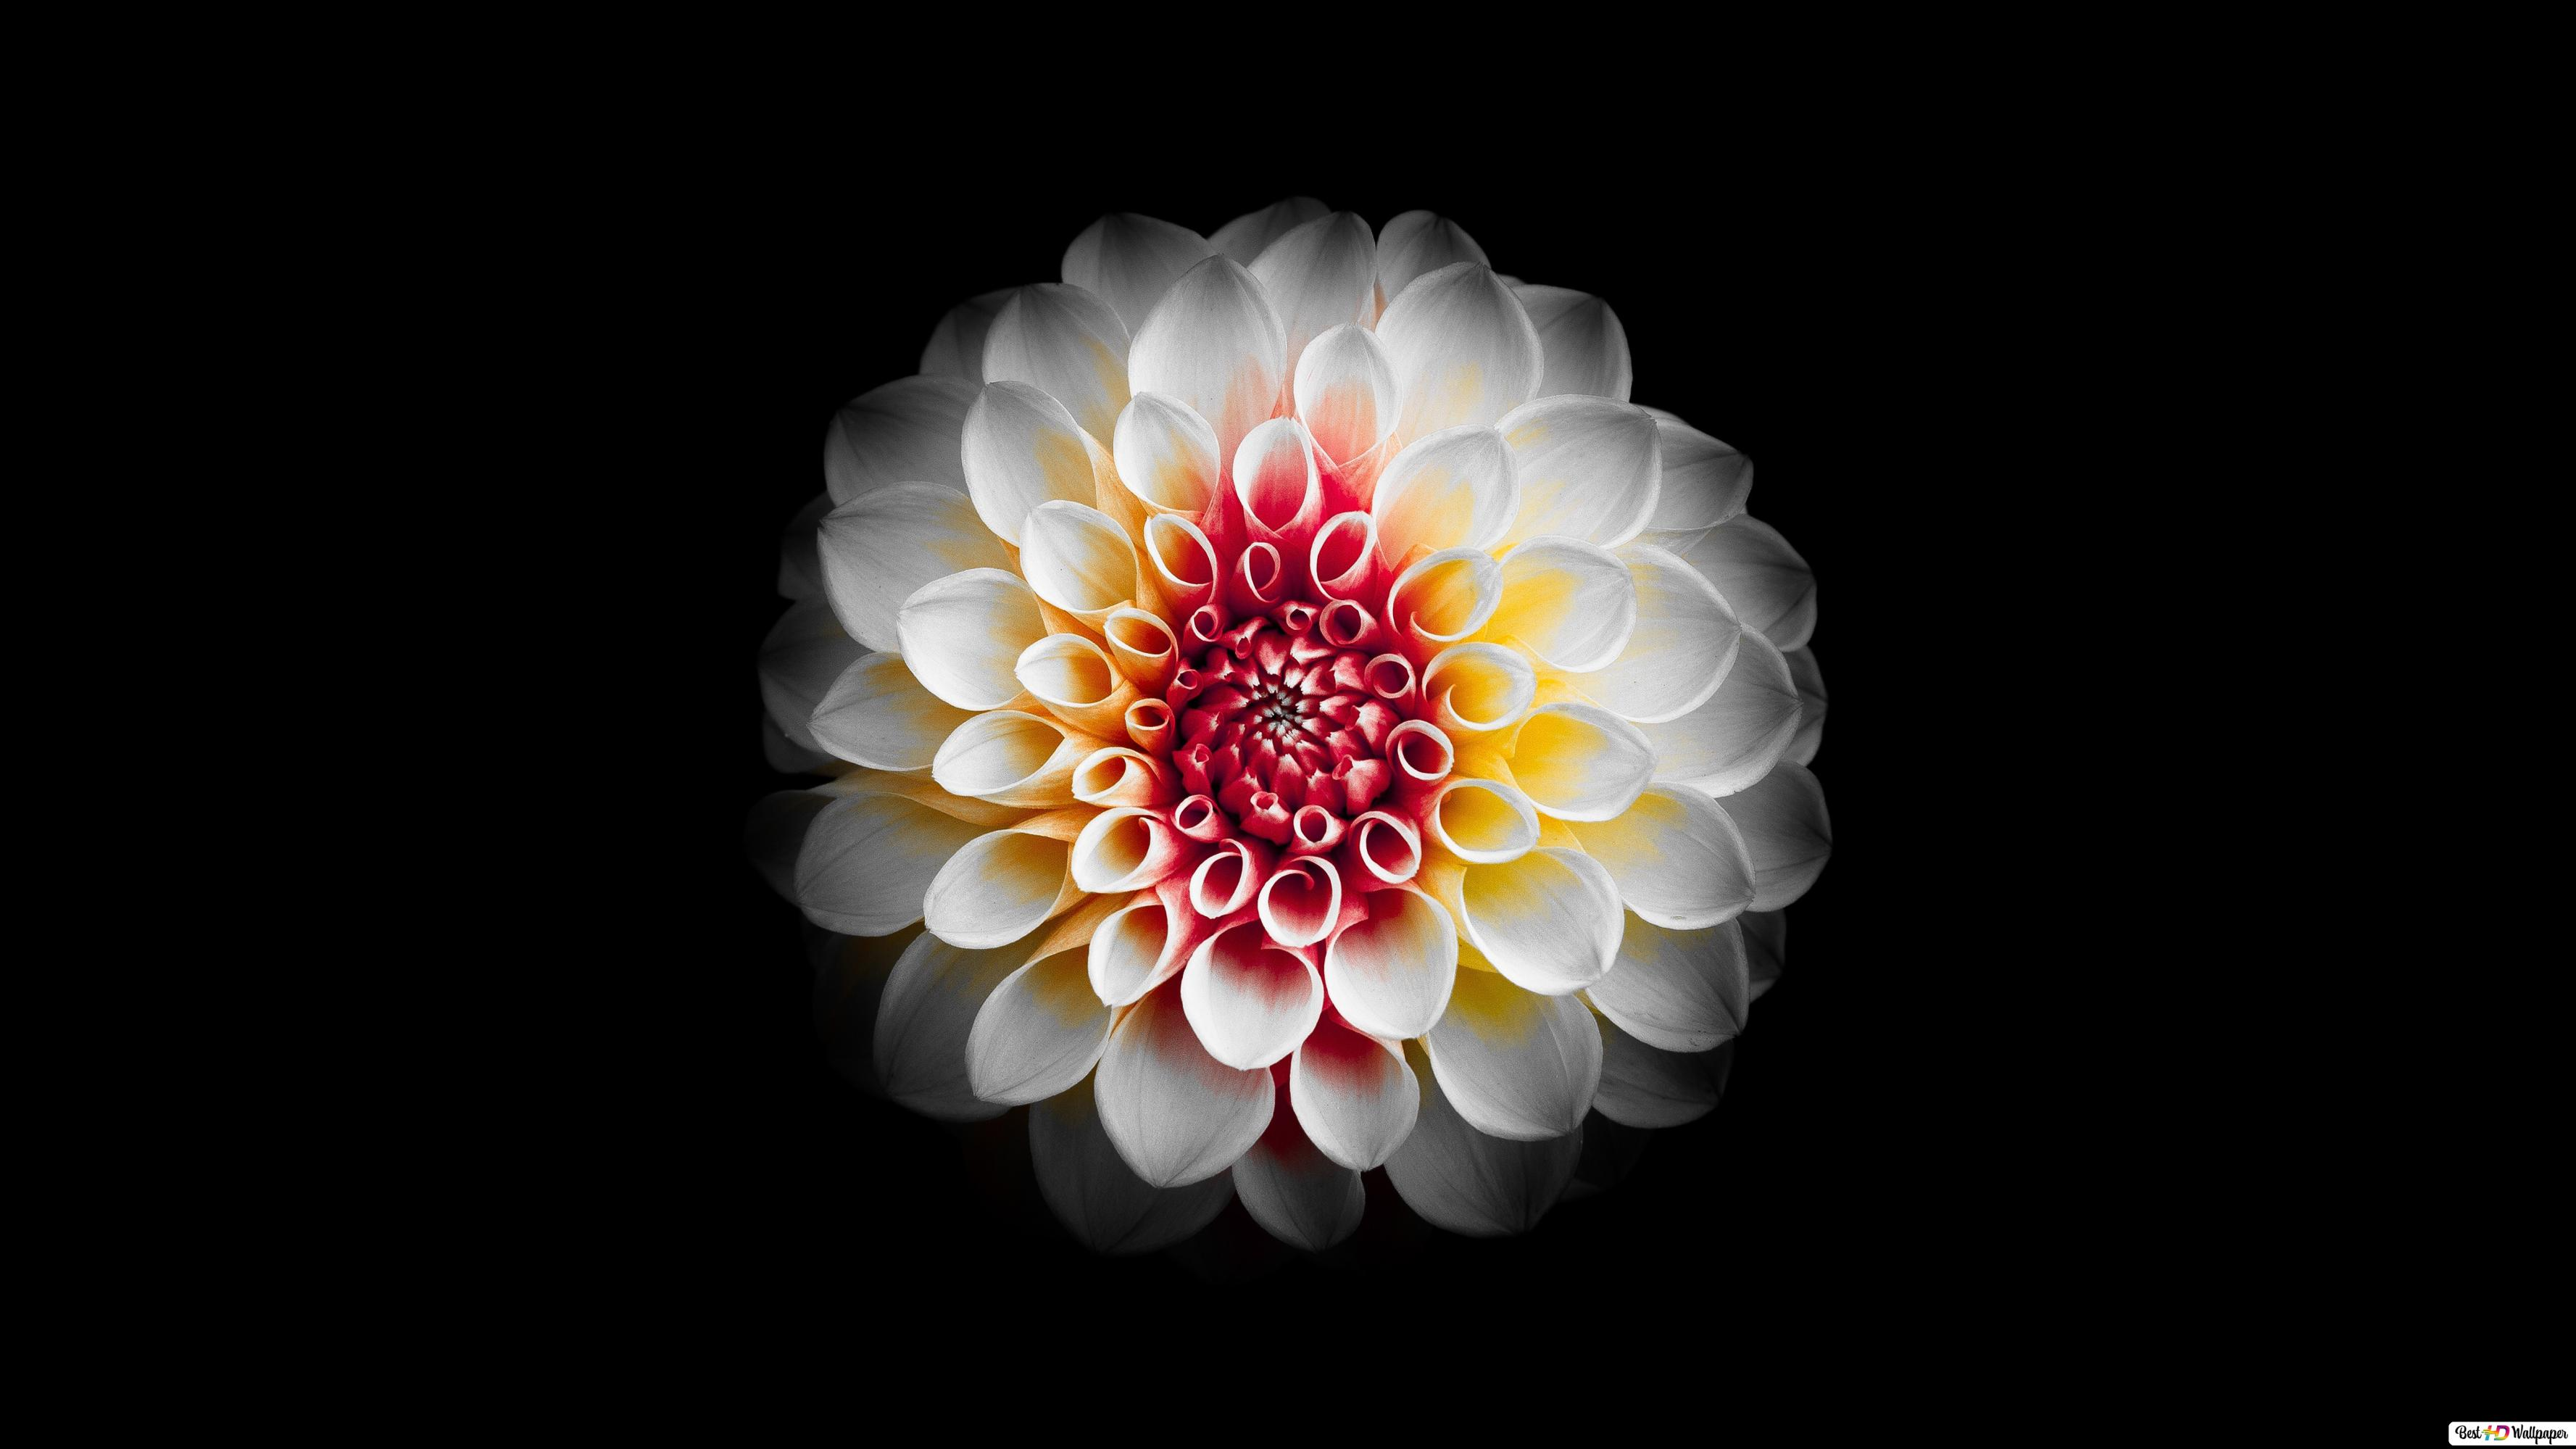 A Beautiful White Dahlia Flower And Black Background Hd Wallpaper Download